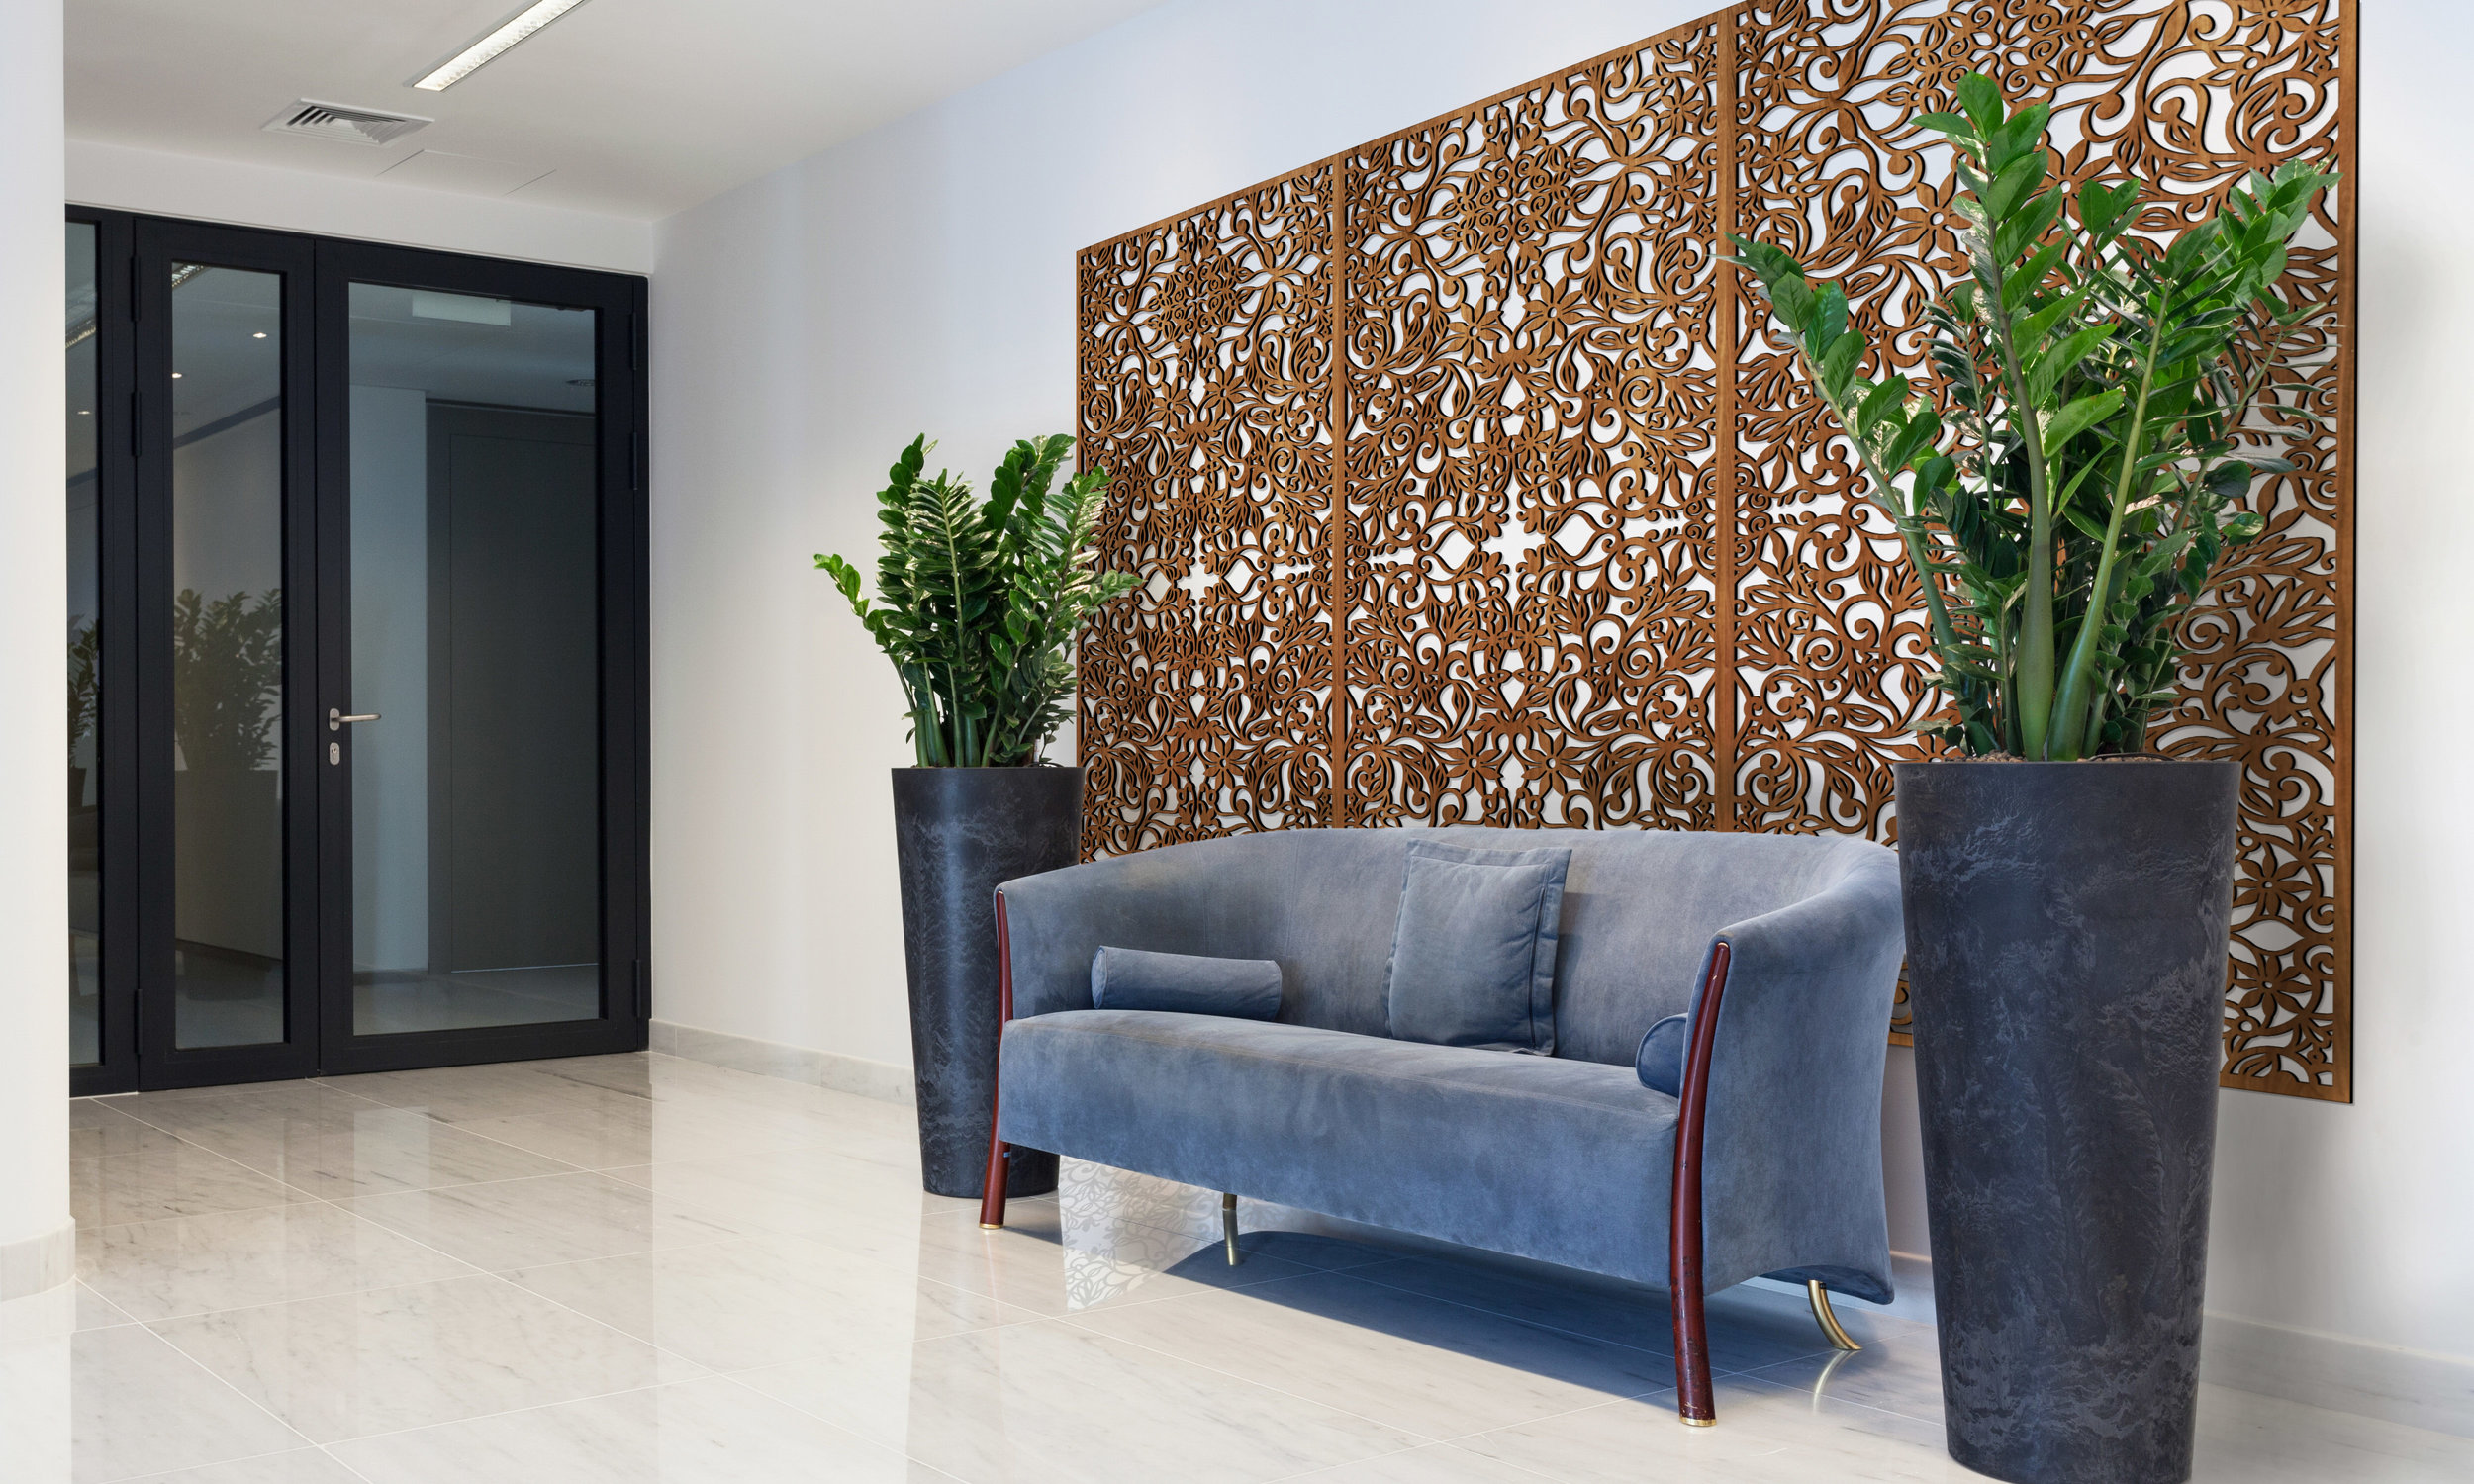 Installation Rendering A   Spring Vines decorative office wall panel - shown in Cherry